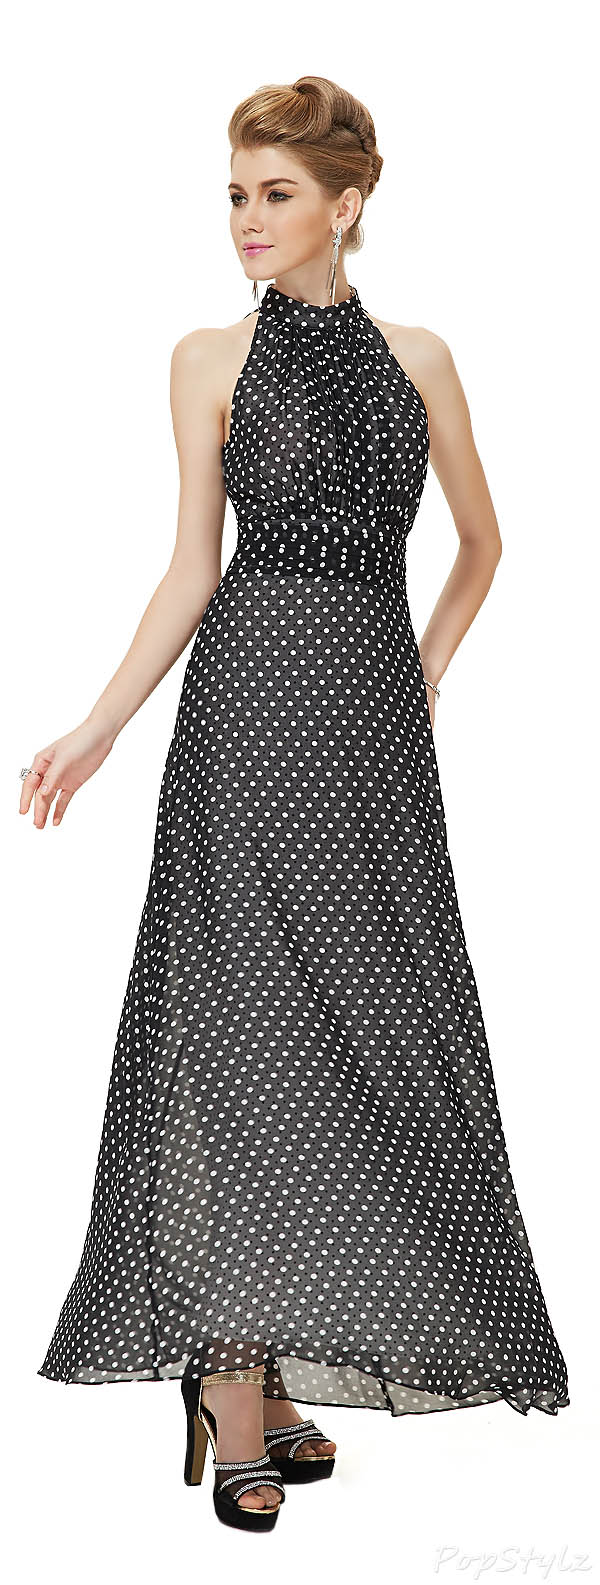 Ever Pretty 08173 High Collar Polka Dot Chiffon Retro Evening Dress